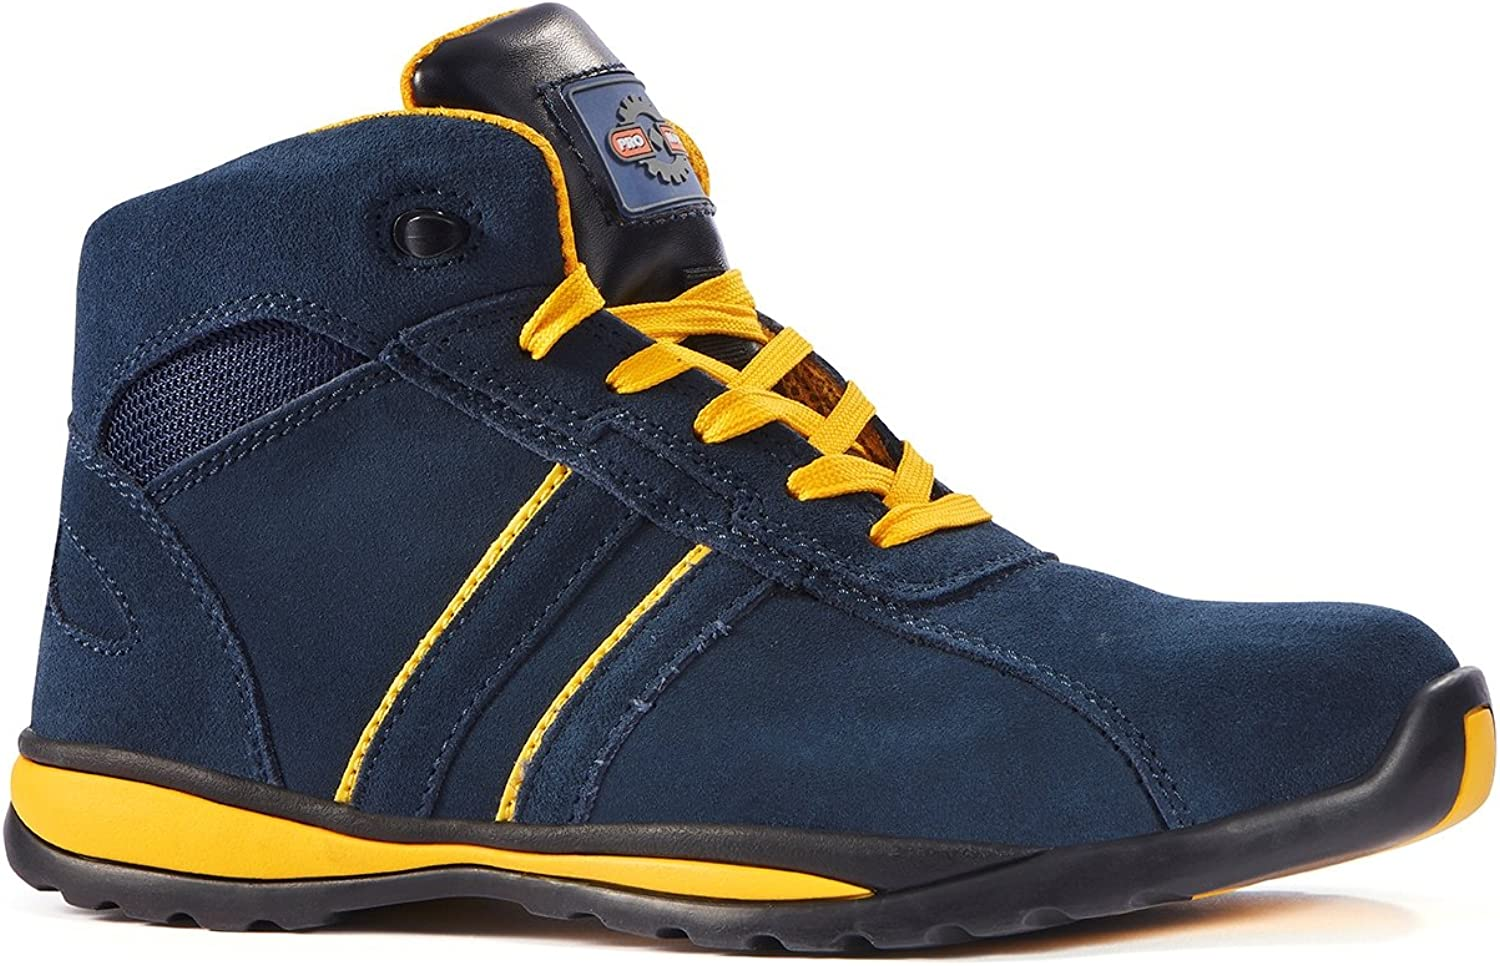 Rock Fall Pro Man Seattle S1P SRC bluee Yellow Steel Toe Cap Boxing Safety Boots